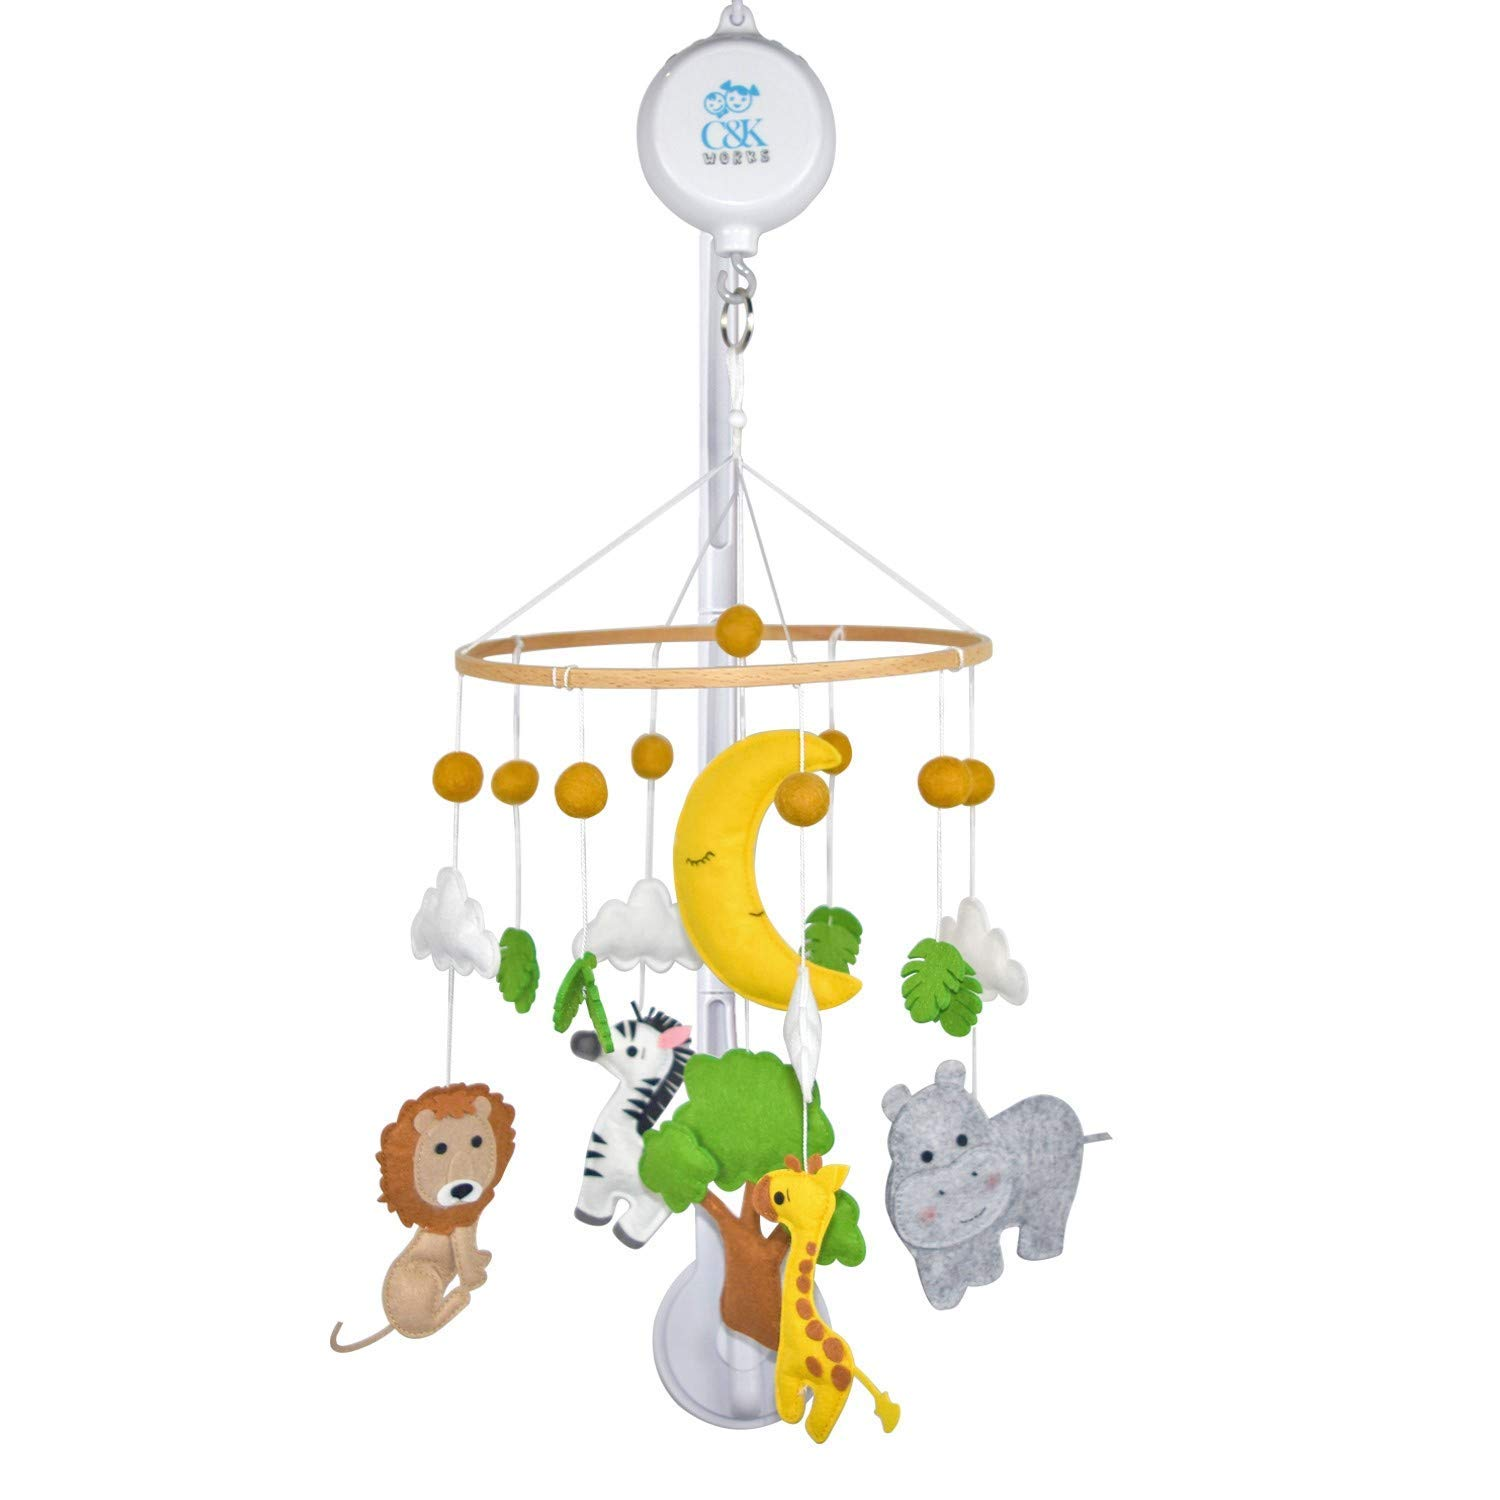 C&K WORKS Baby Crib Mobile, Music Box Player Includes 35 Songs and Crib Arm Holder, Hanging Carousel with Safari Zoo Animal, Giraffe, Zebra, Lion, Hippo Surrounded by Tree, Moon and Clouds.